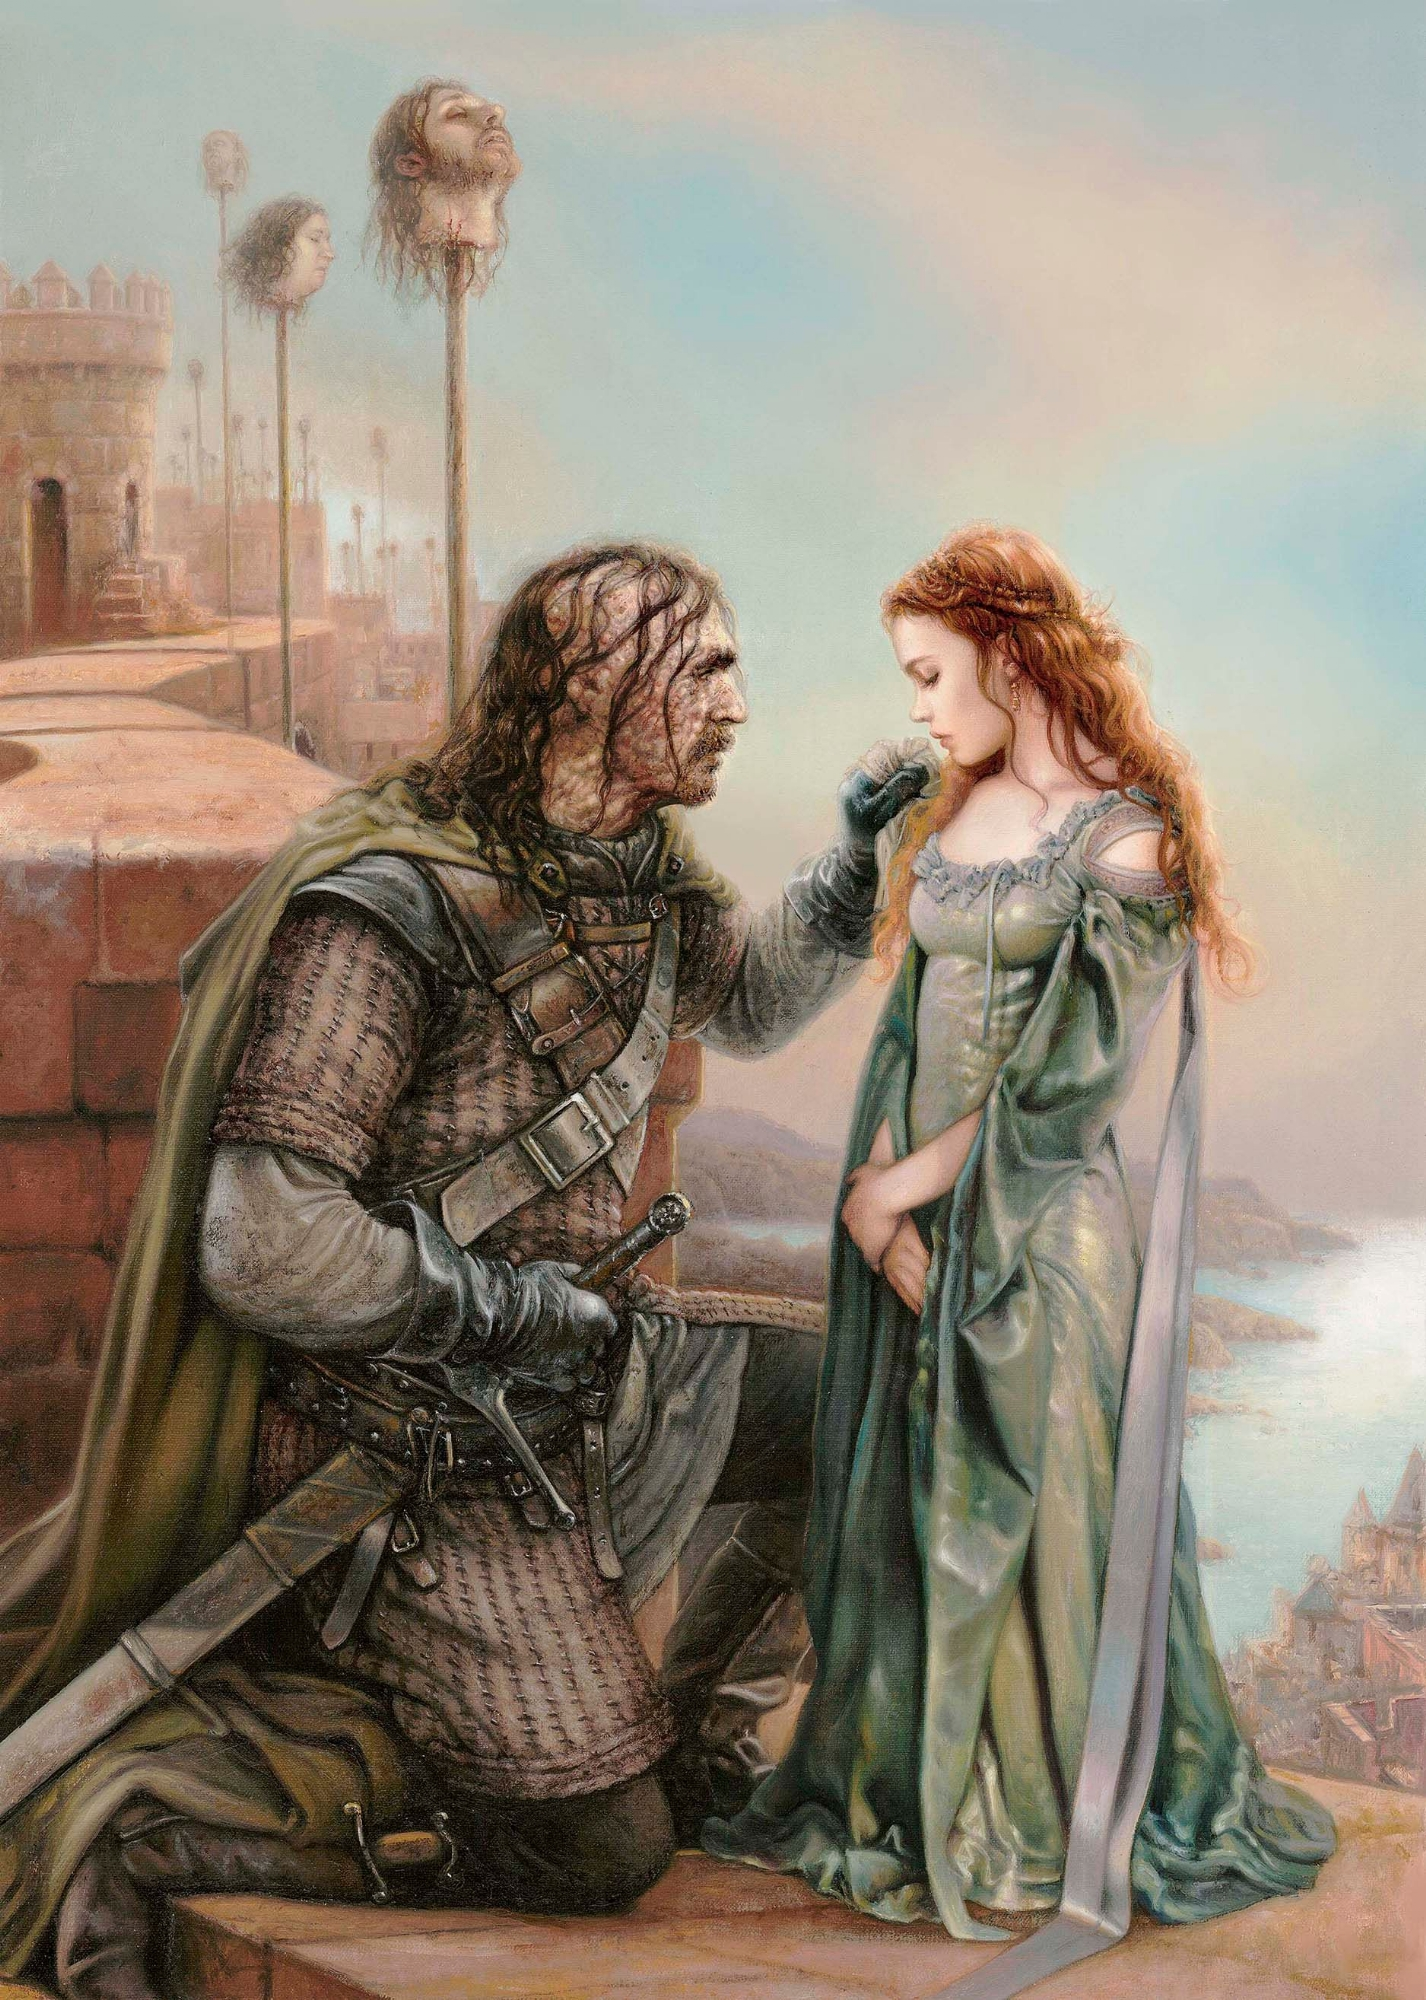 Hound and Sansa Comic Art